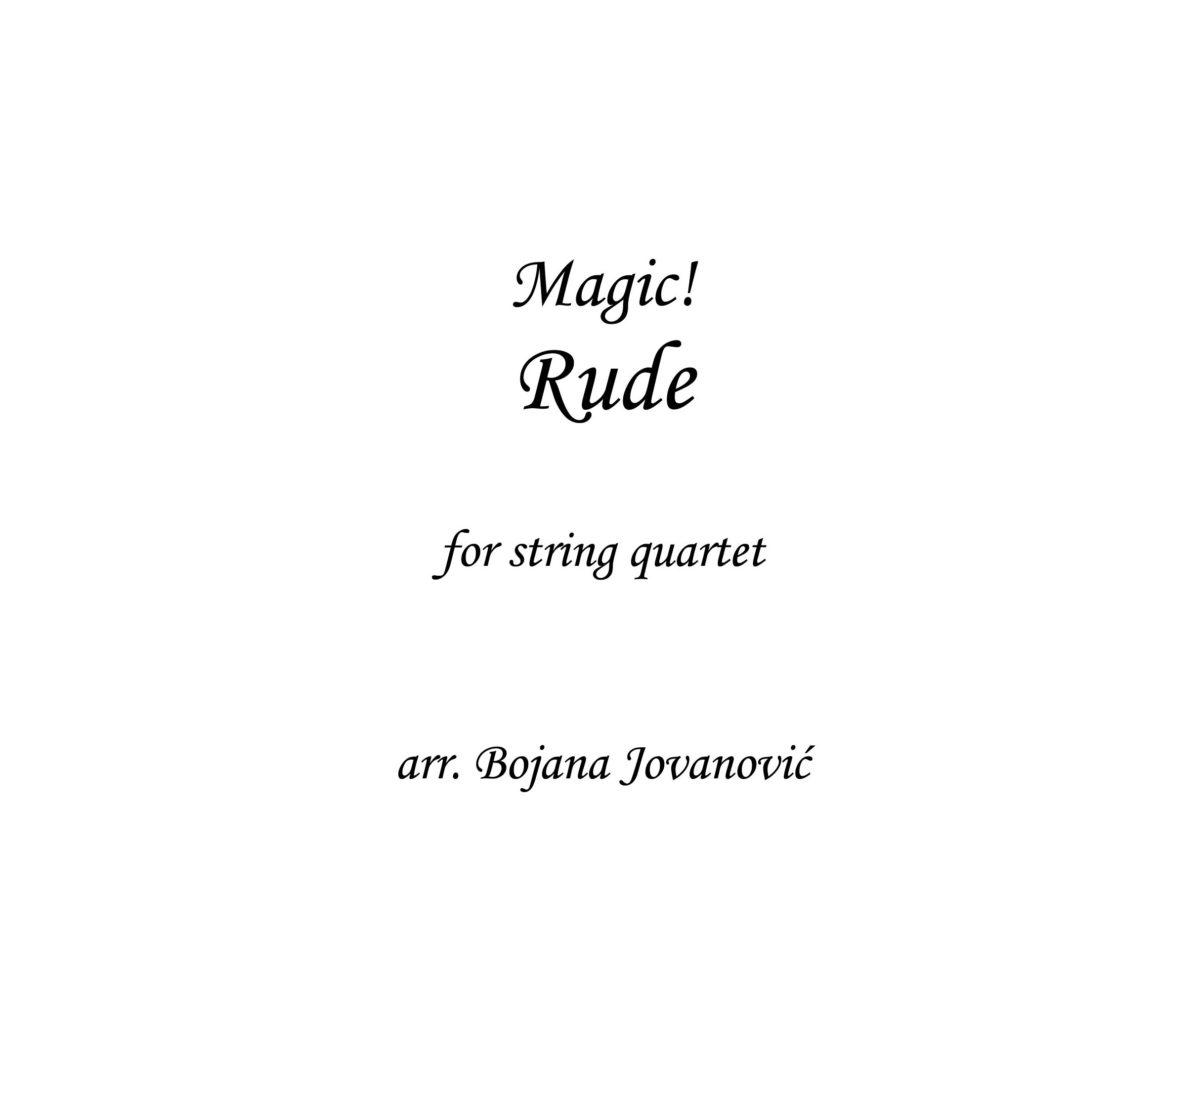 Rude (Magic!) - Sheet Music